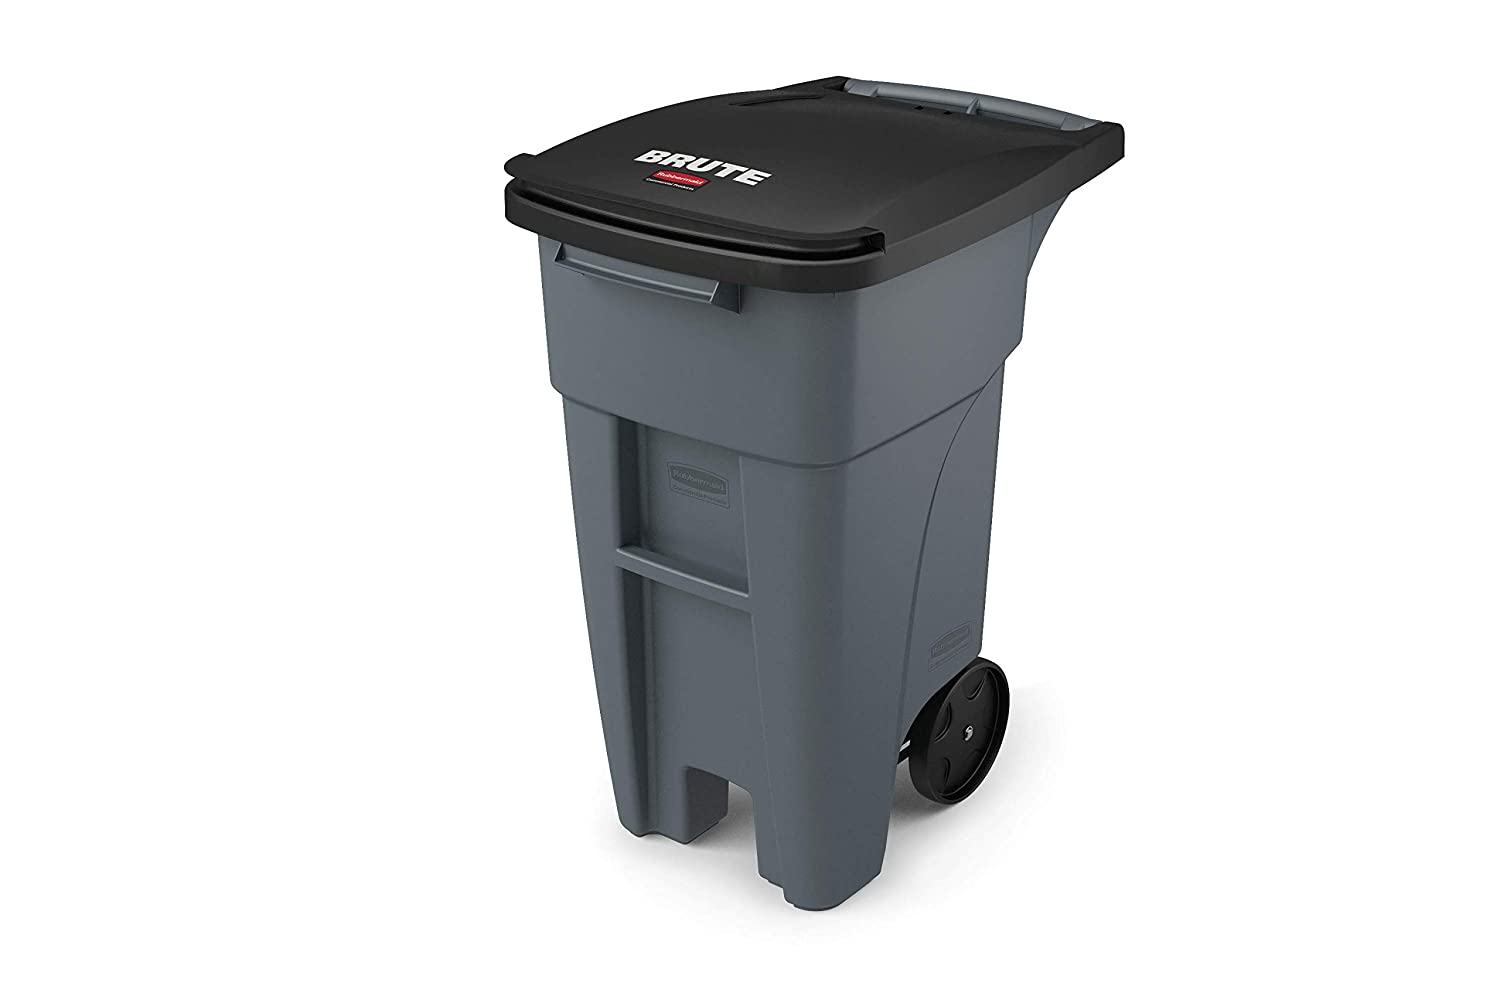 Rubbermaid Commercial Products 1971941 Brute Rollout Heavy-Duty Wheeled Trash/Garbage Can, 32-Gallon, Gray